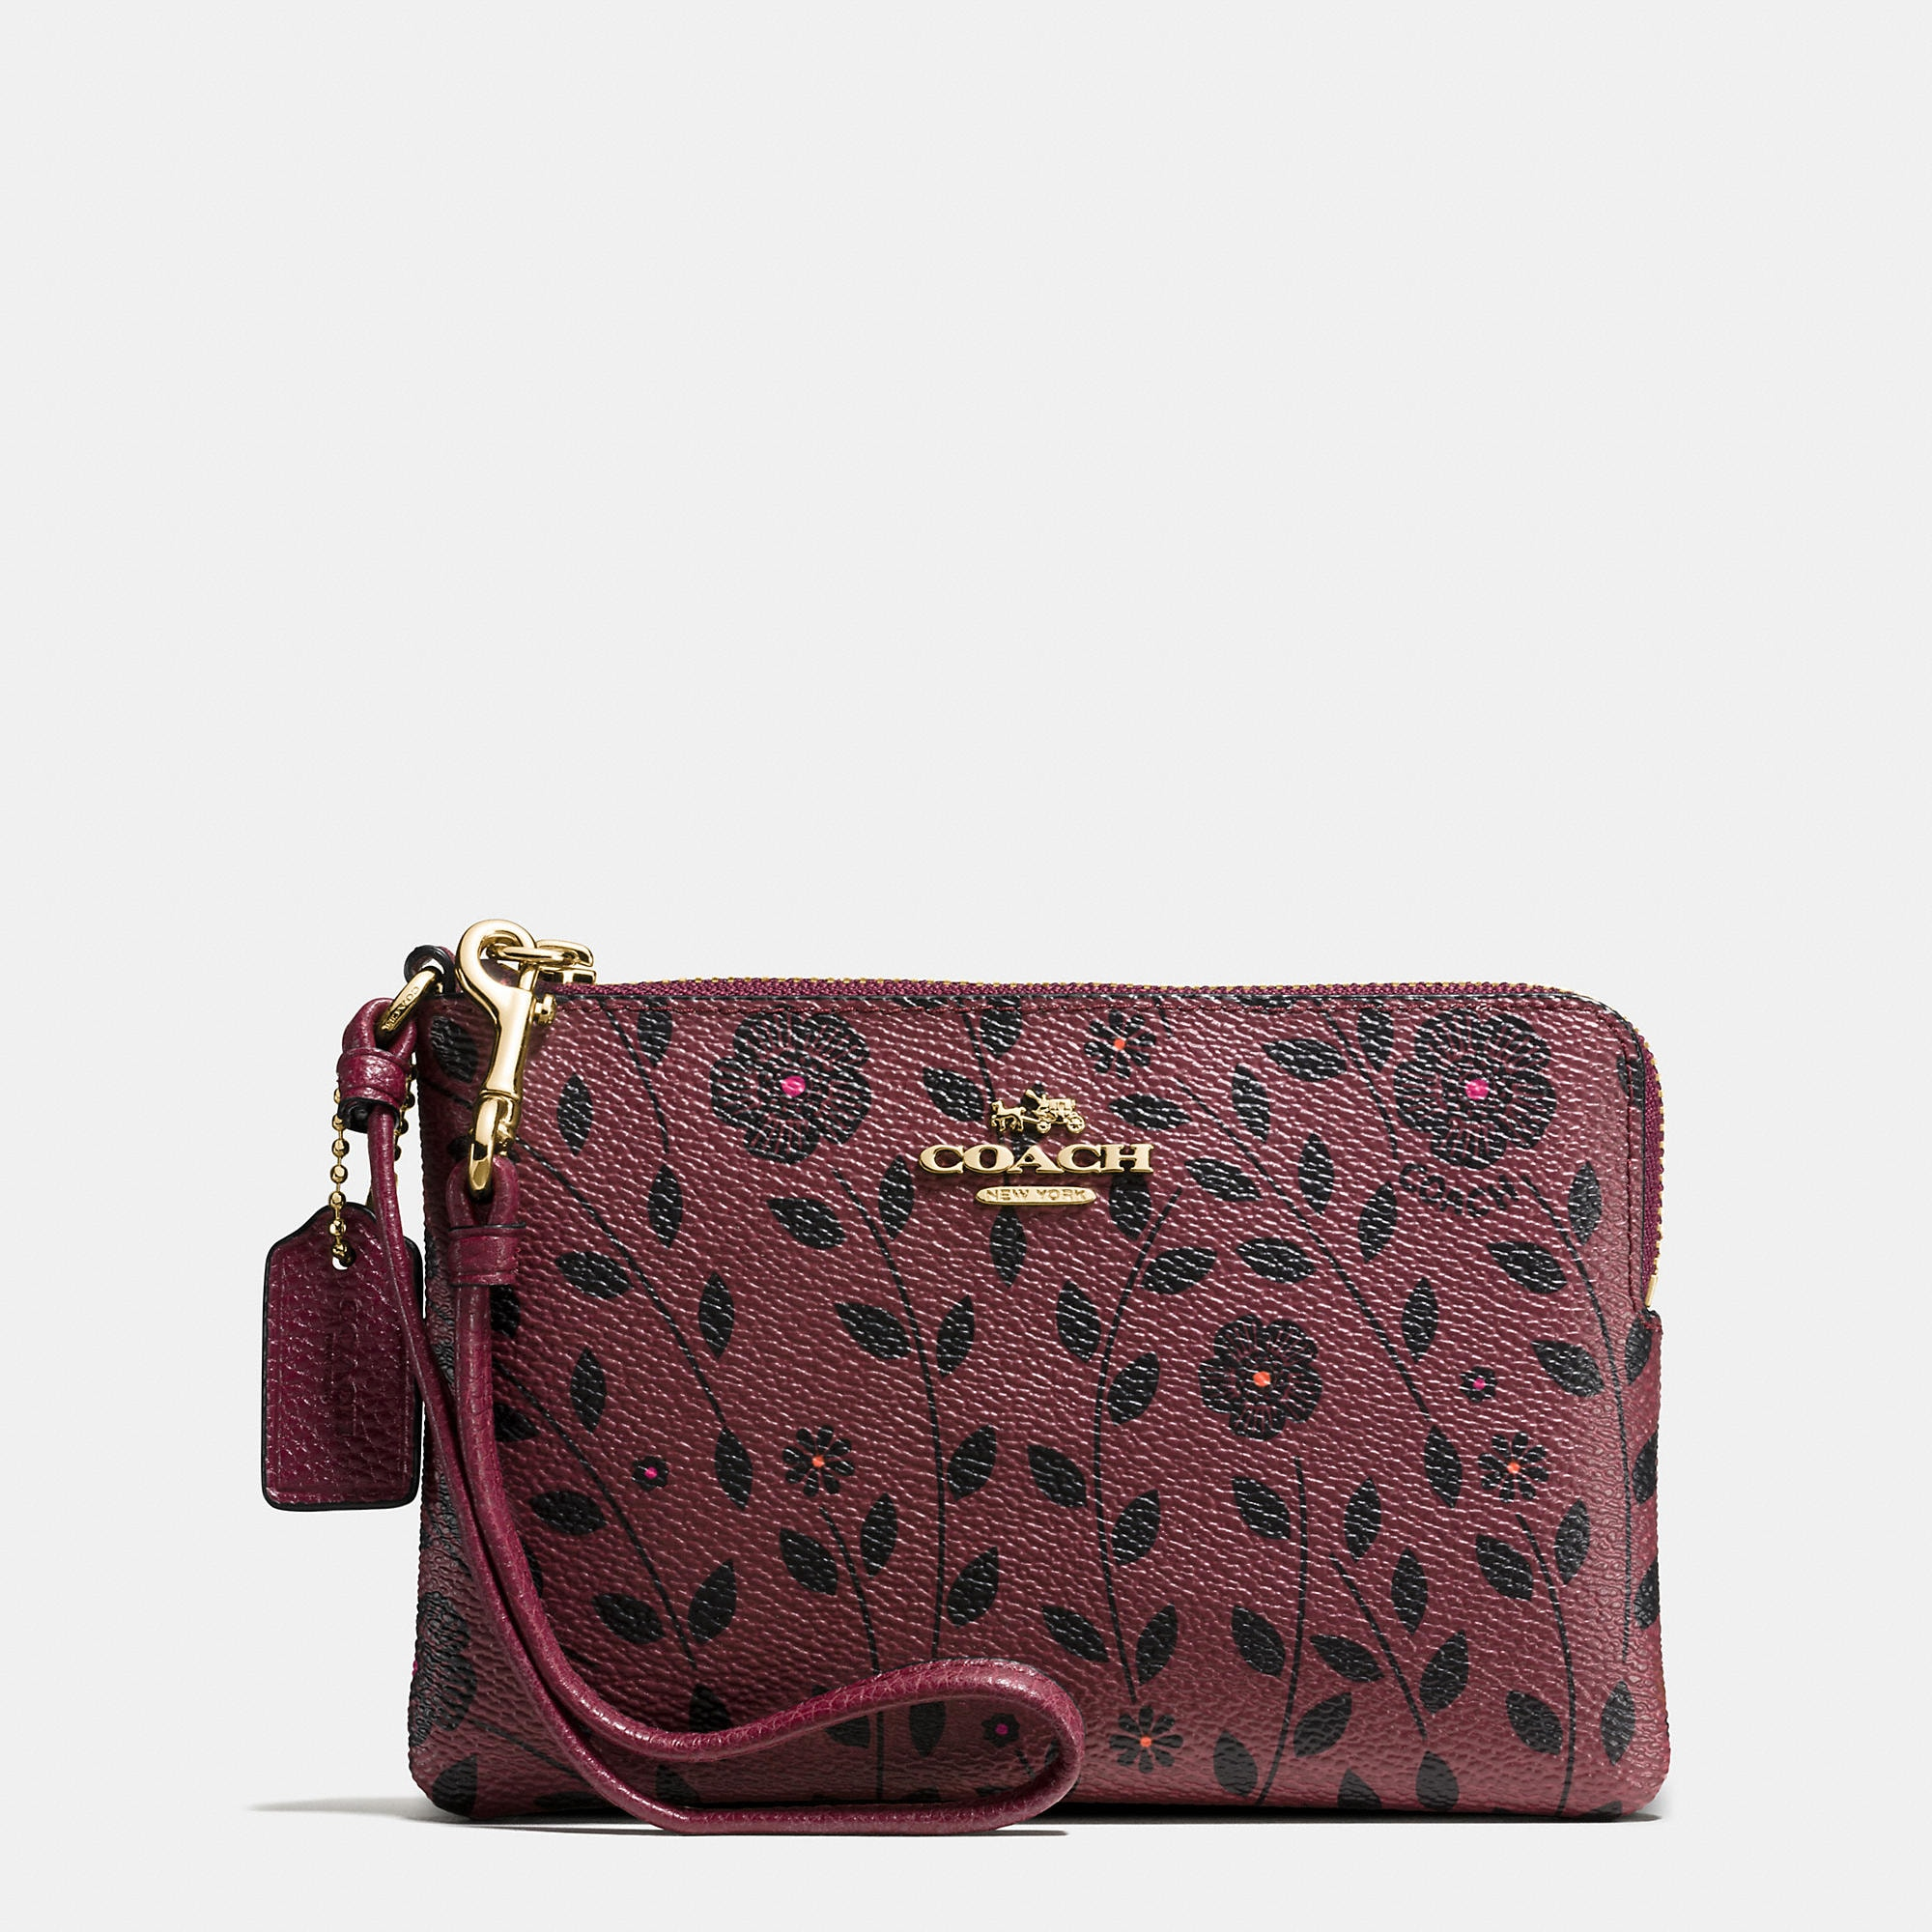 Coach Corner Zip Wristlet In Willow Floral Print Coated Canvas